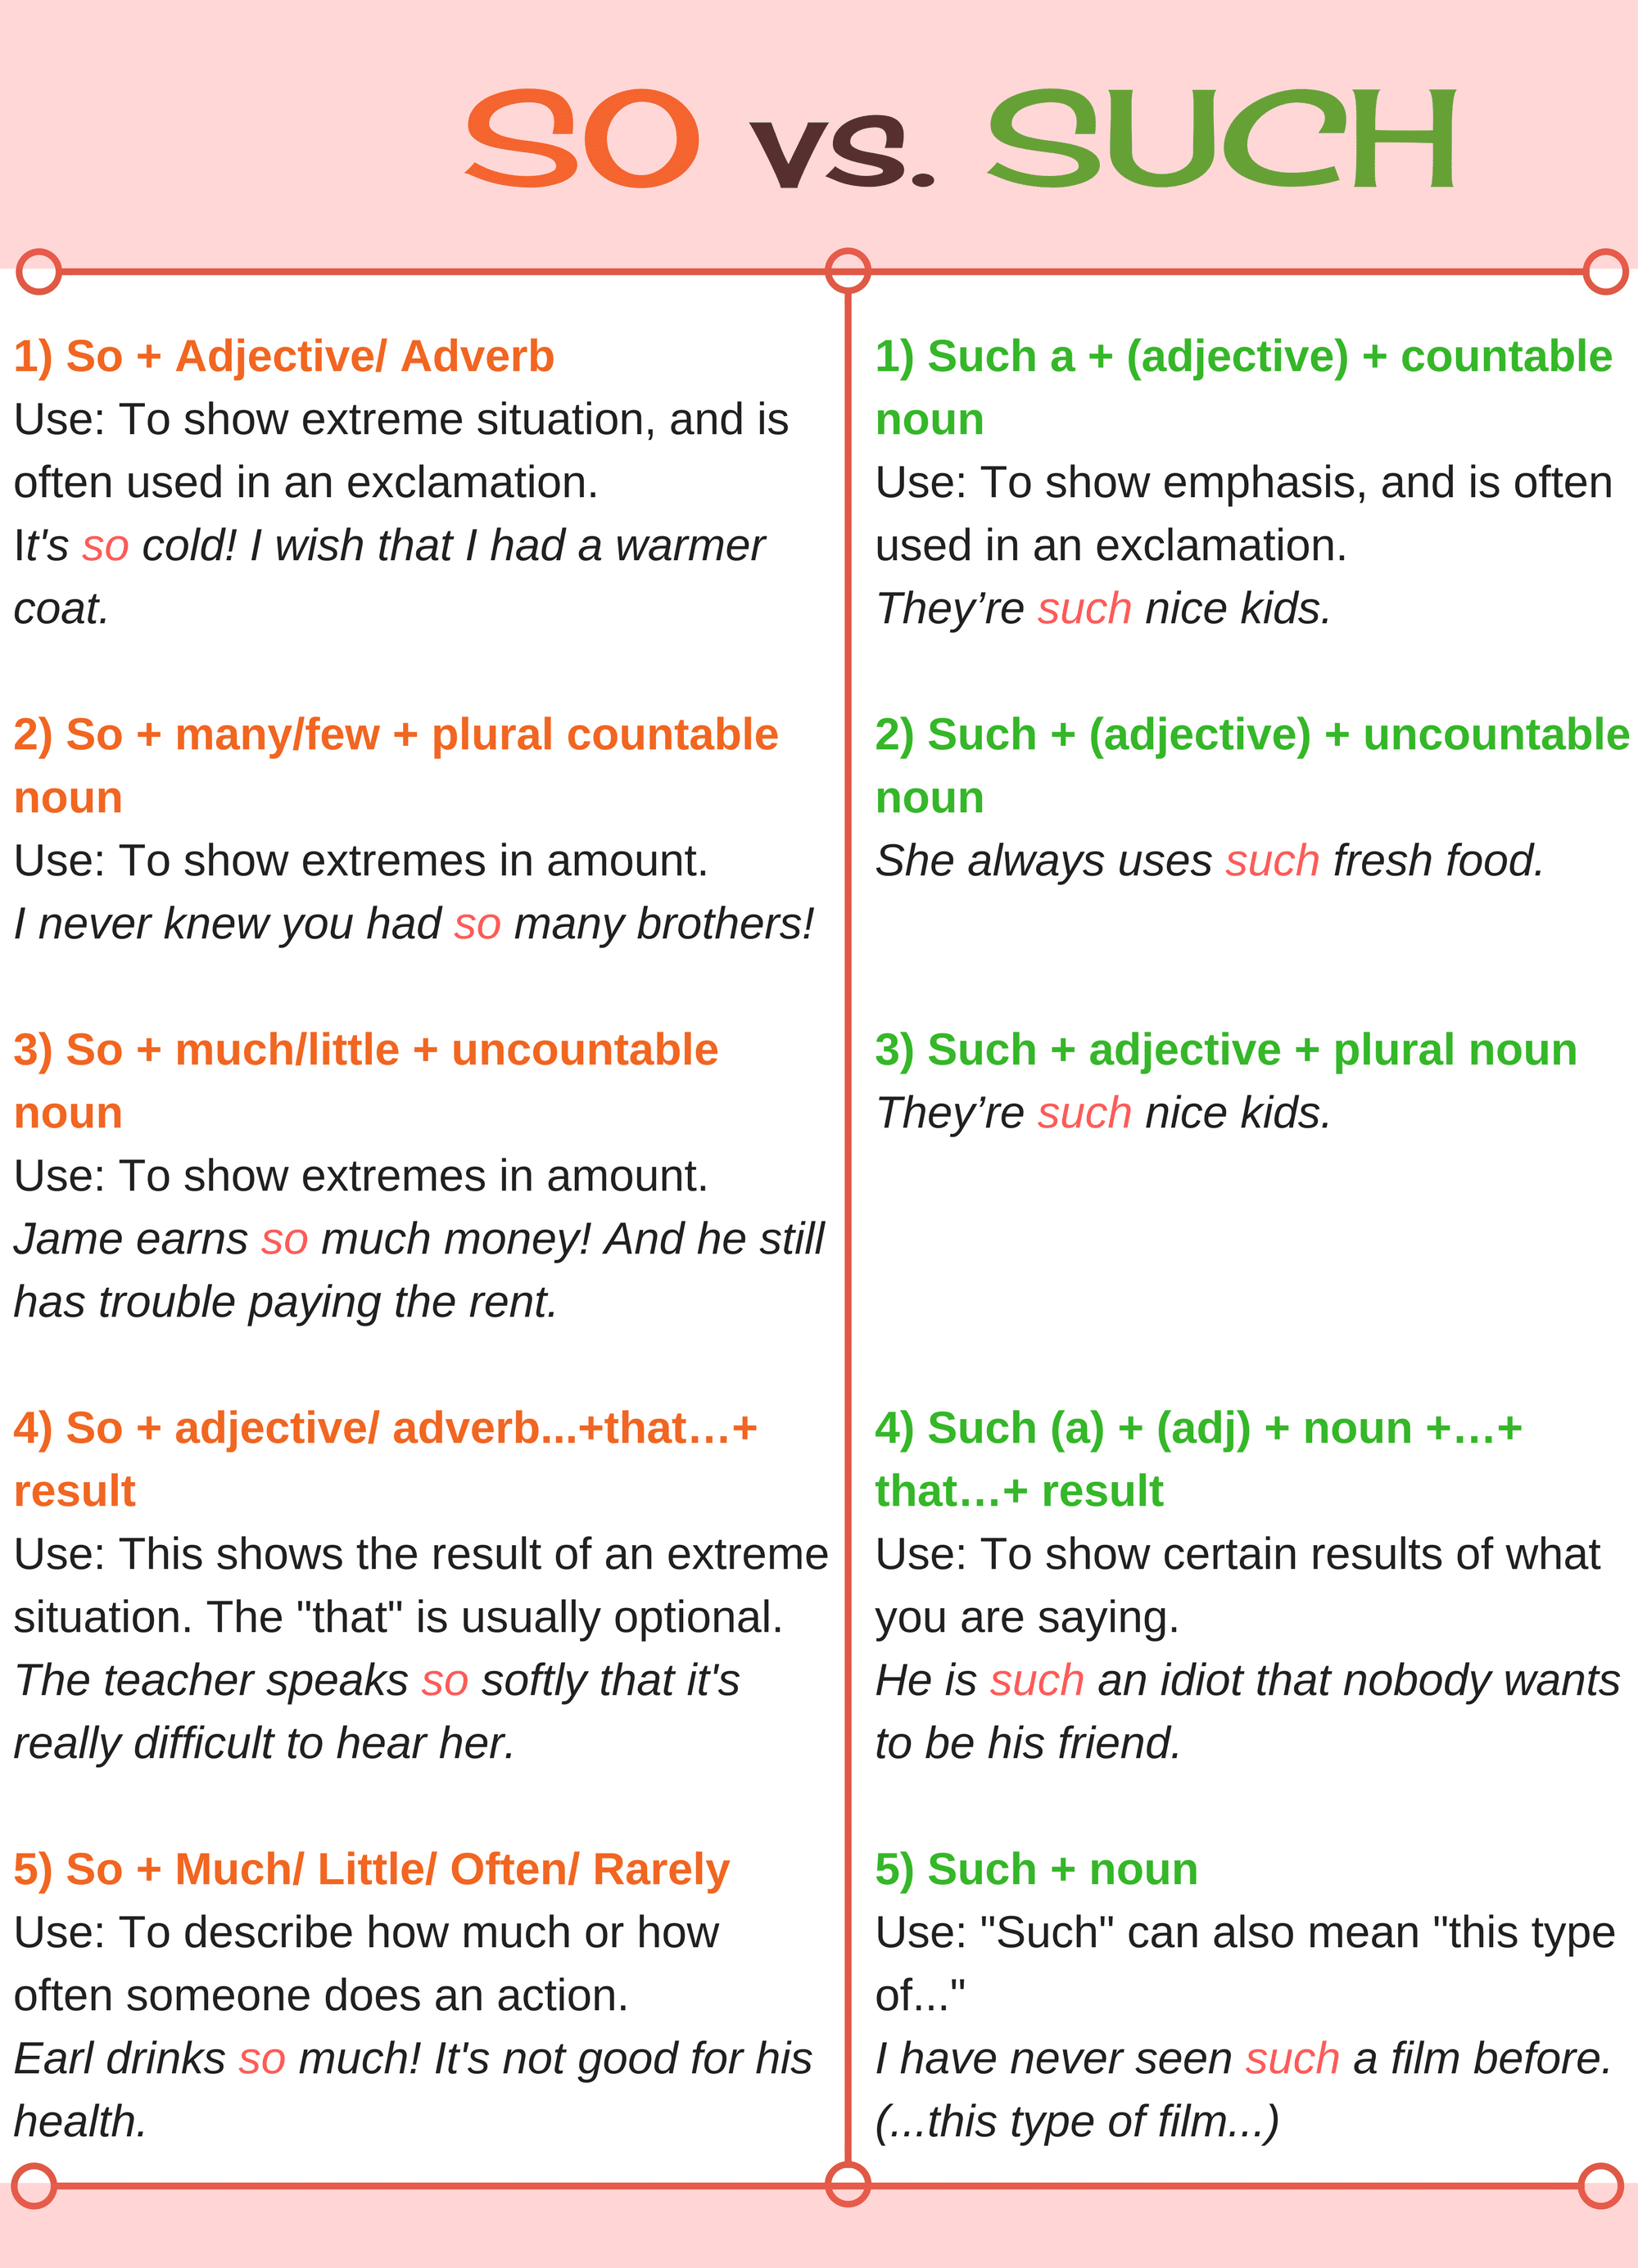 So And Such Difference Between So And Such With Useful Examples Eslbuzz Learning English Learn English Grammar English Language Learning English Language Teaching [ 2770 x 2000 Pixel ]